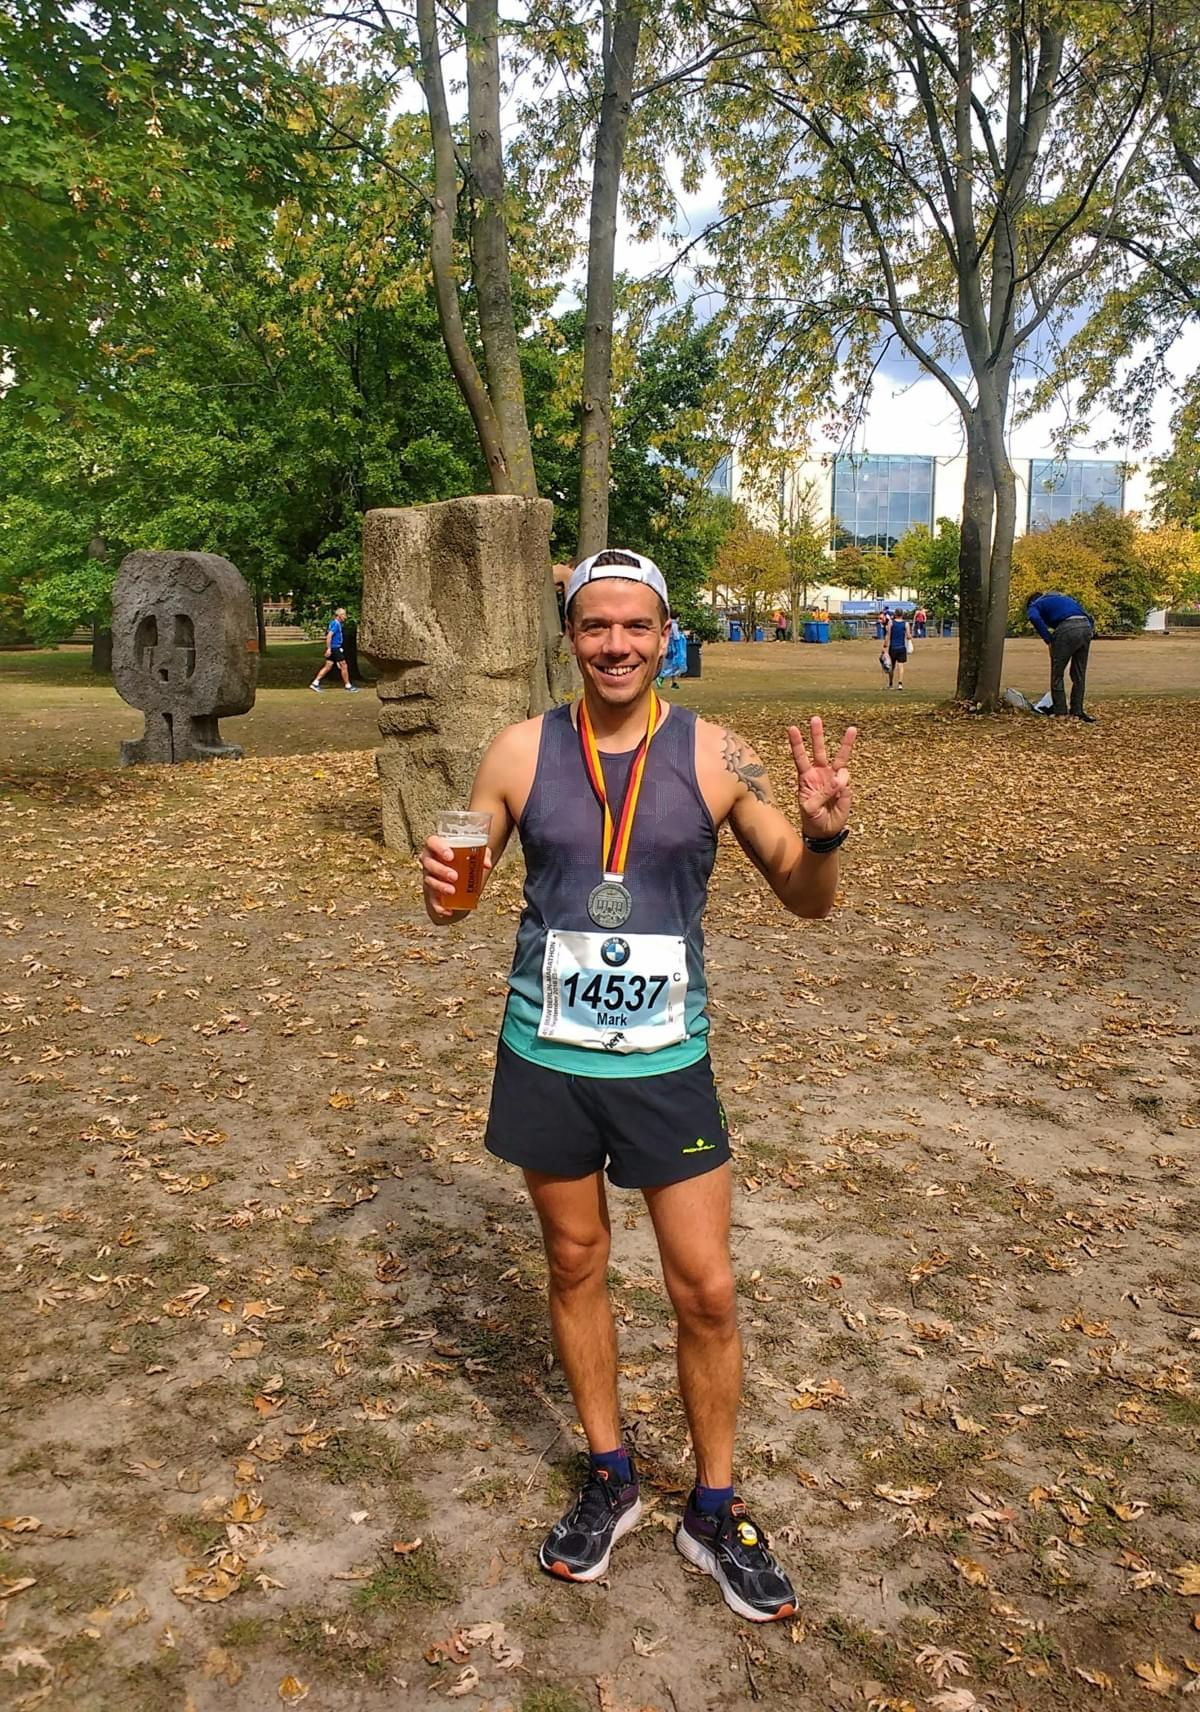 Berlin Marathon post-race medal and beer celebration in the Tiergarten